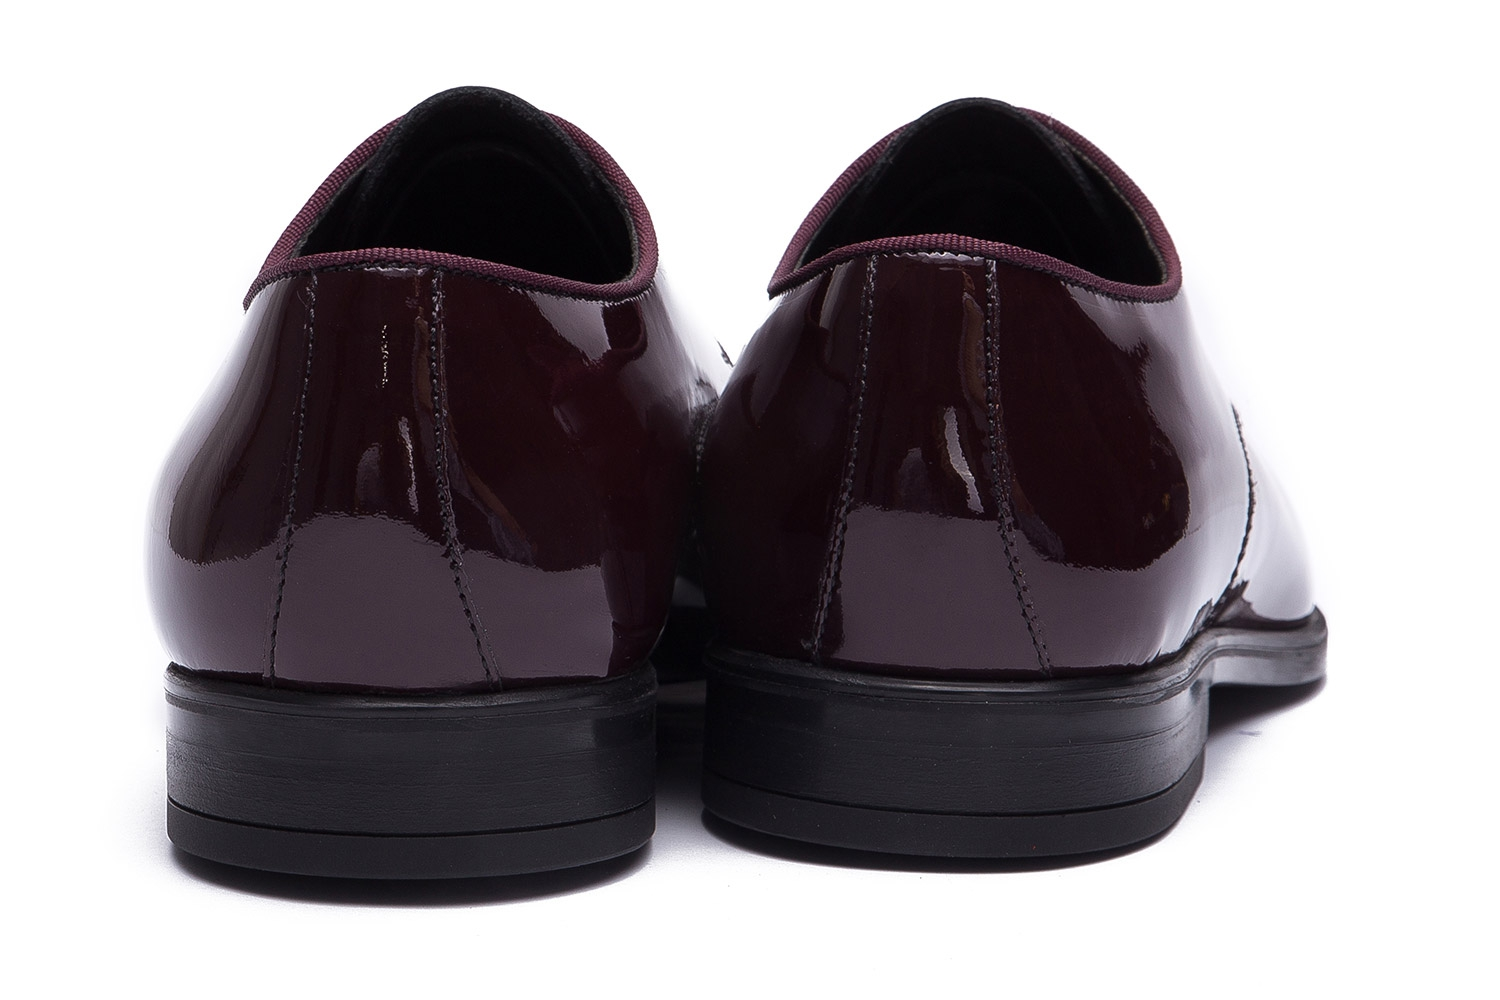 Burgundy Genuine leather Shoes 2